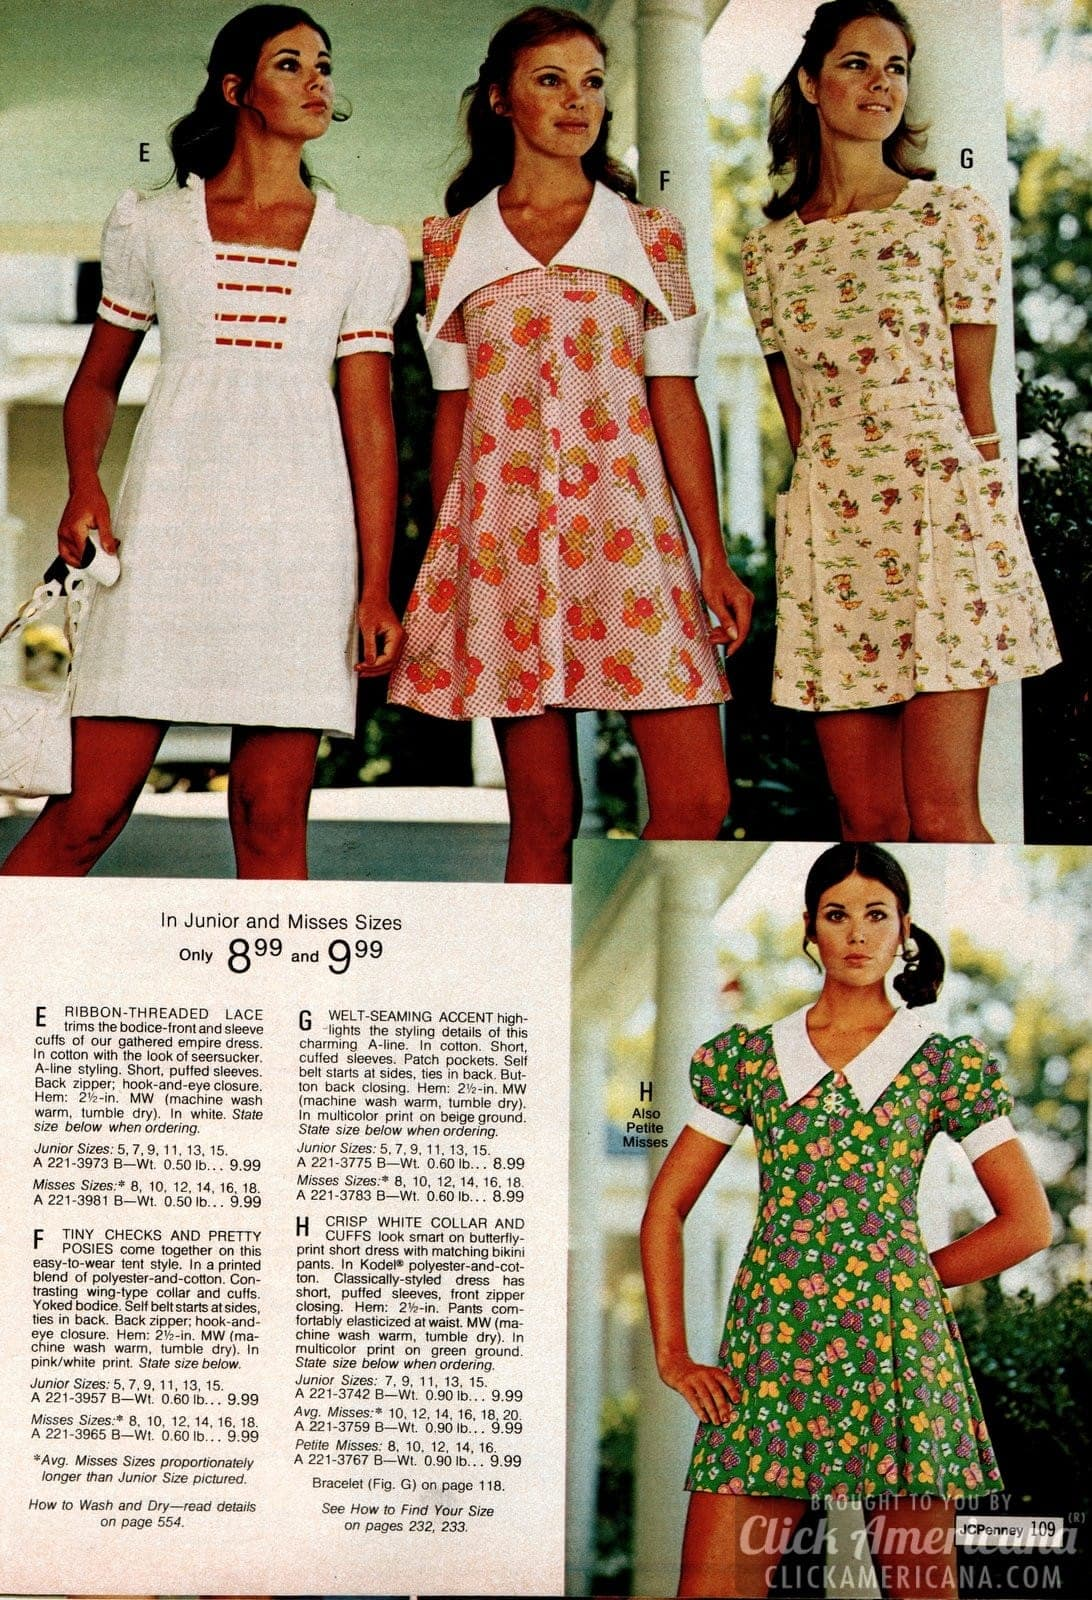 Retro minidresses with wide collars and floral patterns - ribbon-threaded lace trim